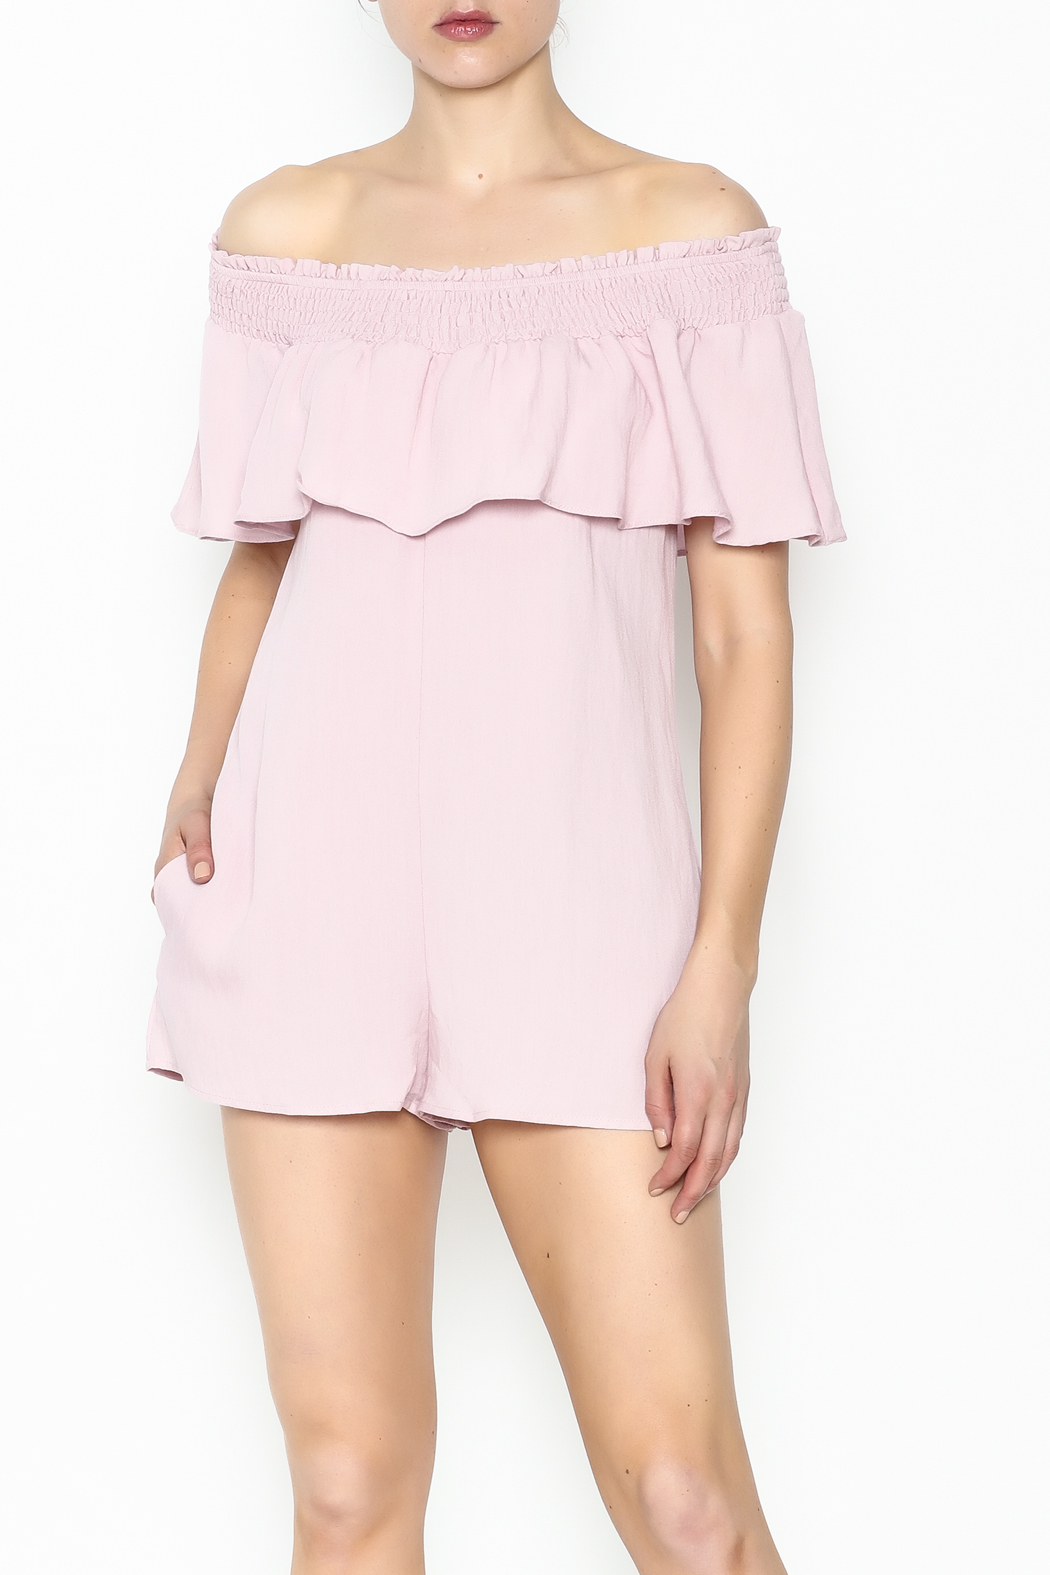 Cotton Candy LA Off The Shoudler Romper - Main Image